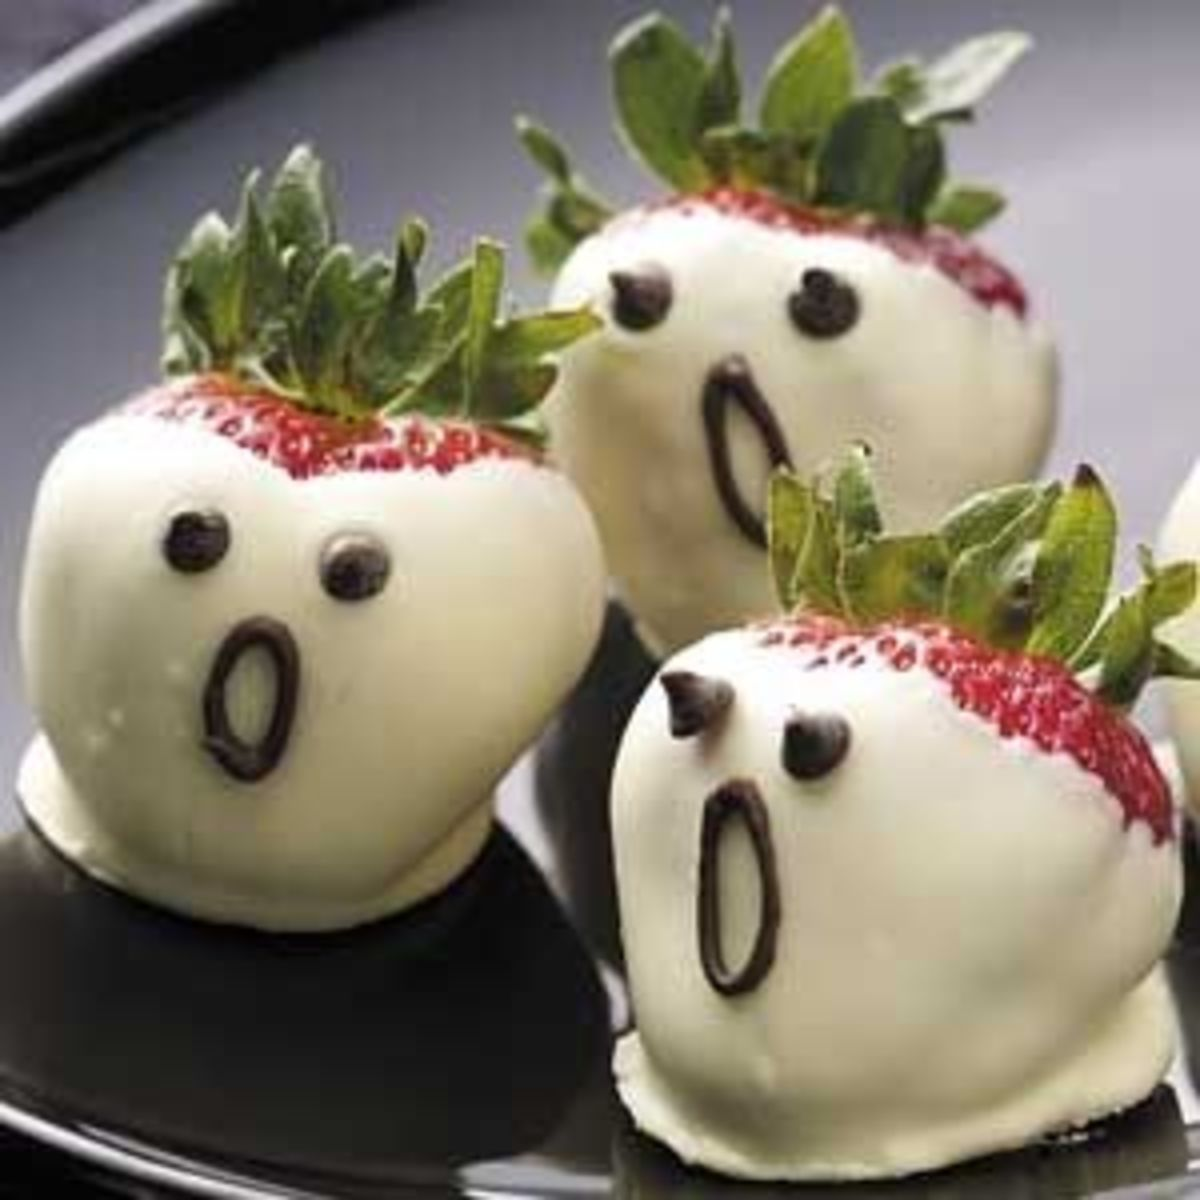 Halloween Food Ideas - Strawberry Ghosts